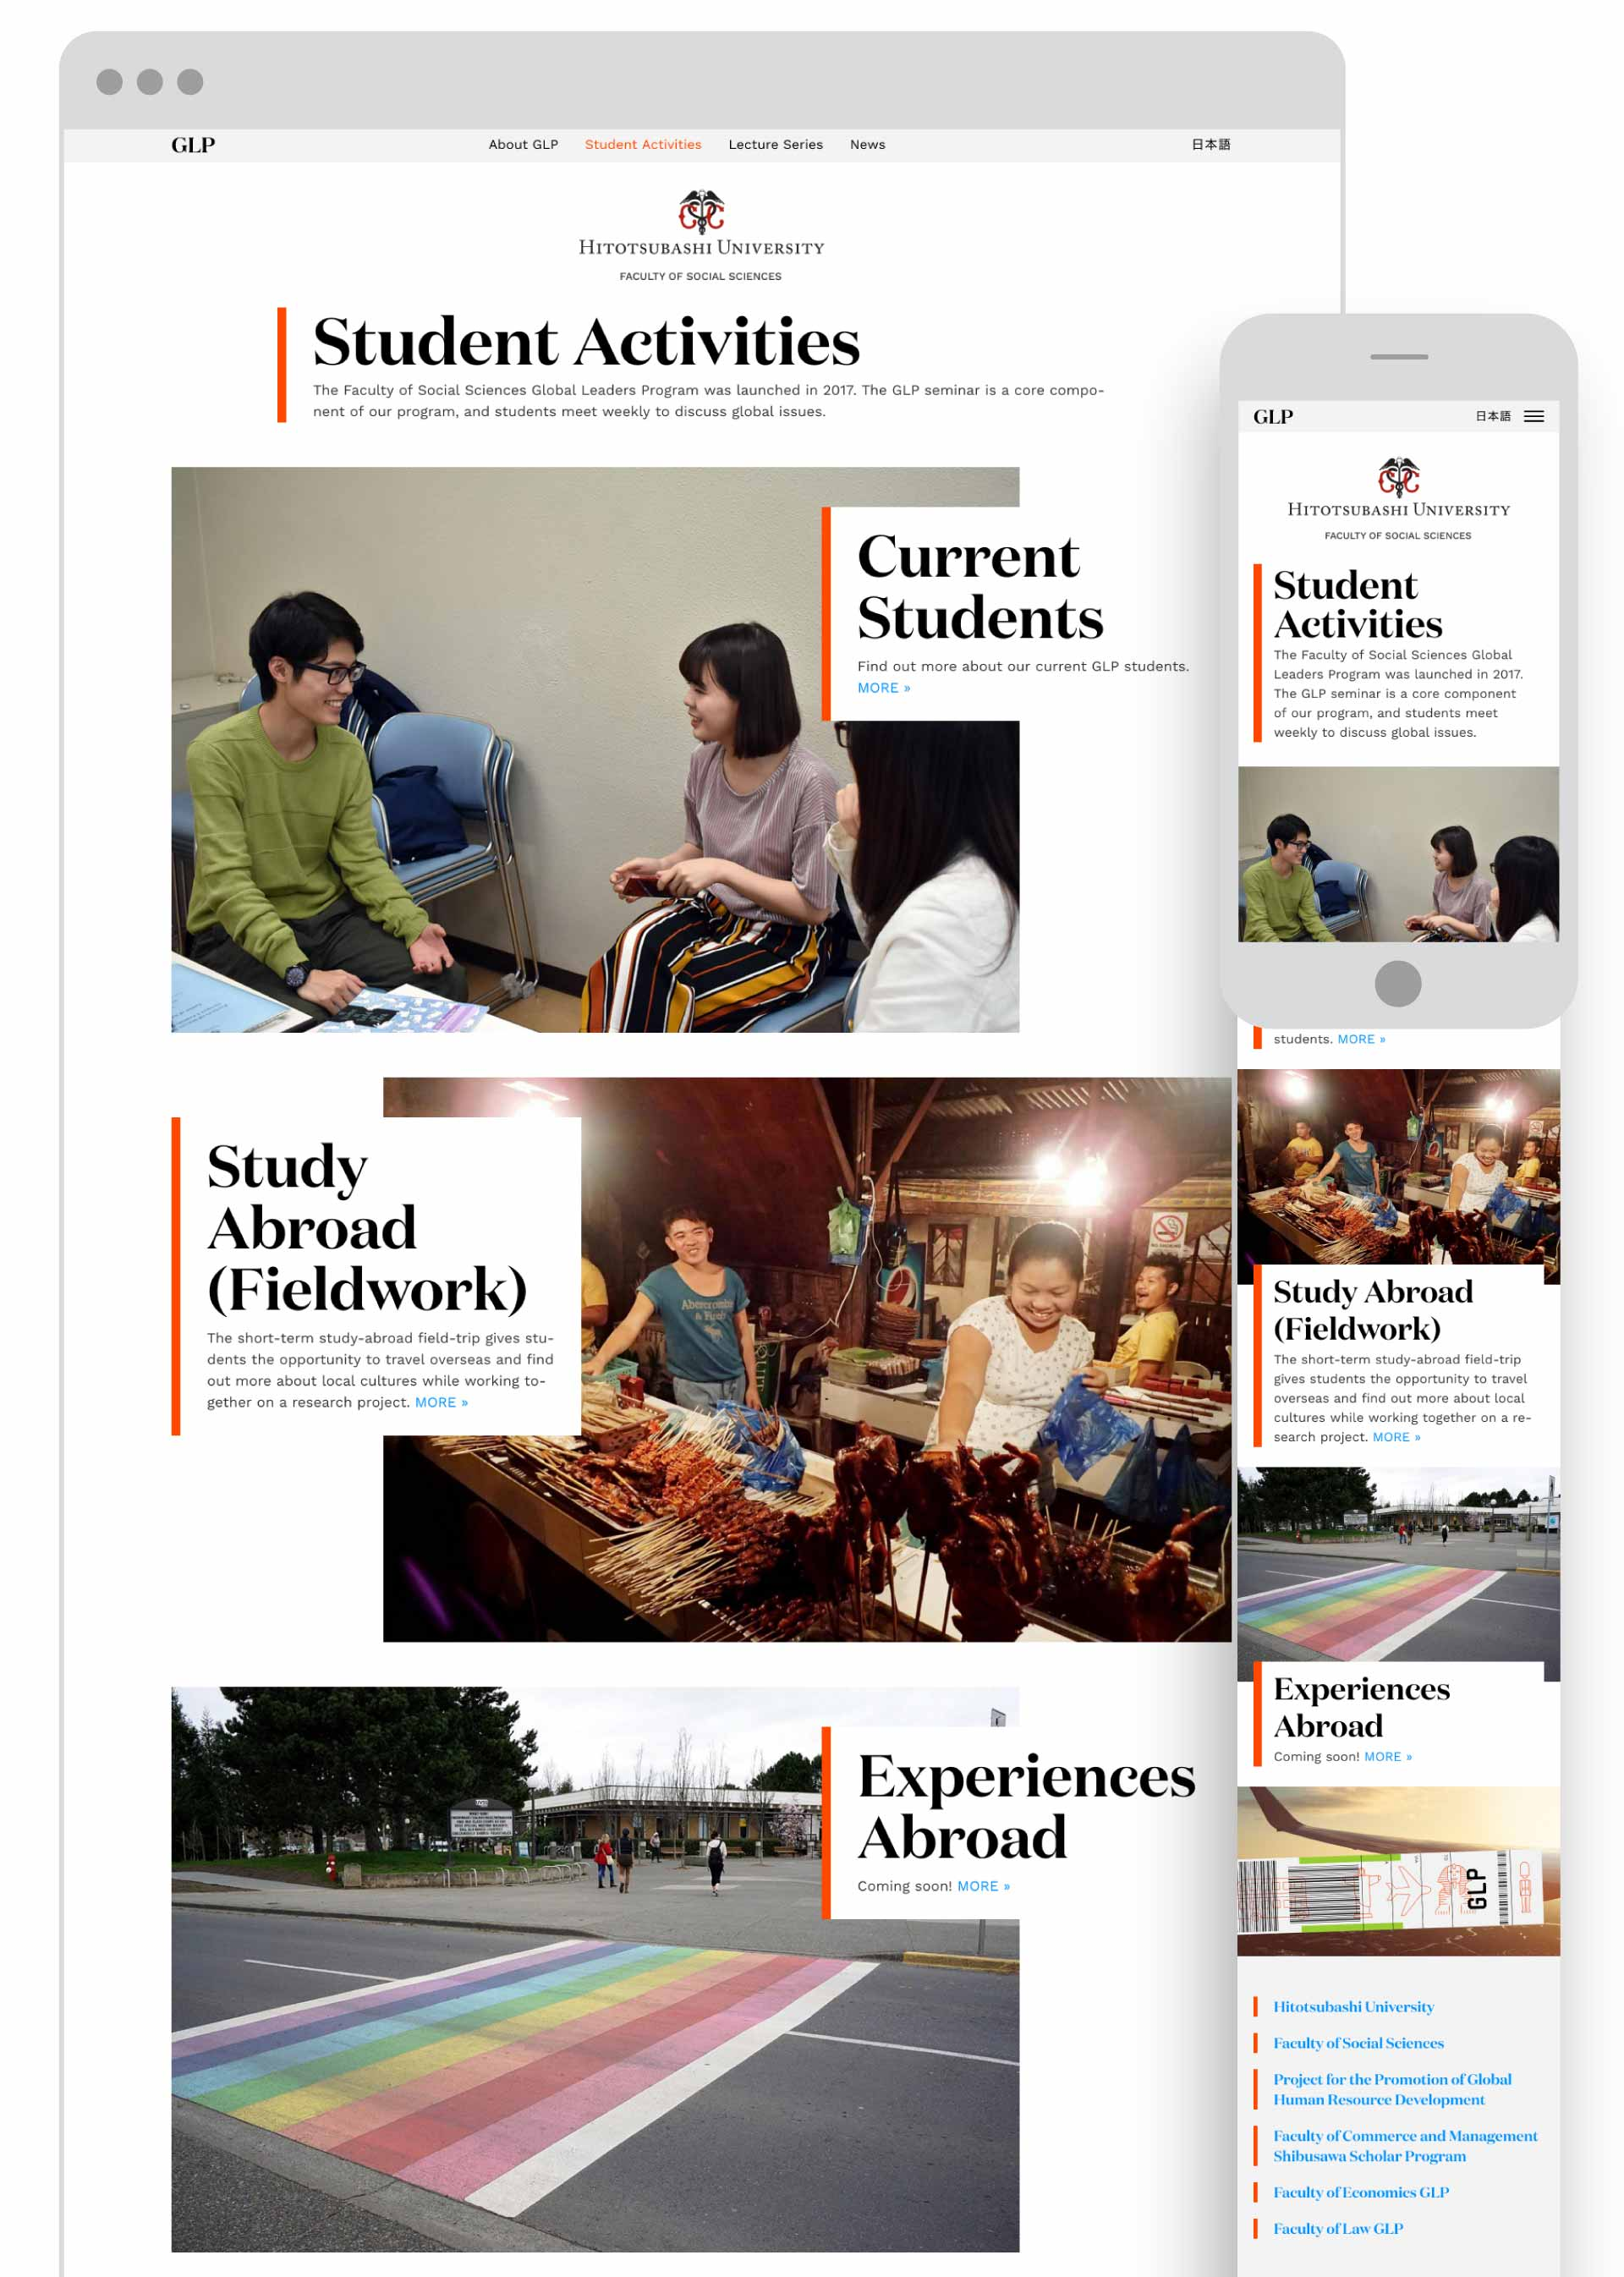 Hitotsubashi University - Global Leaders Program - Student Activities Listing Page Template